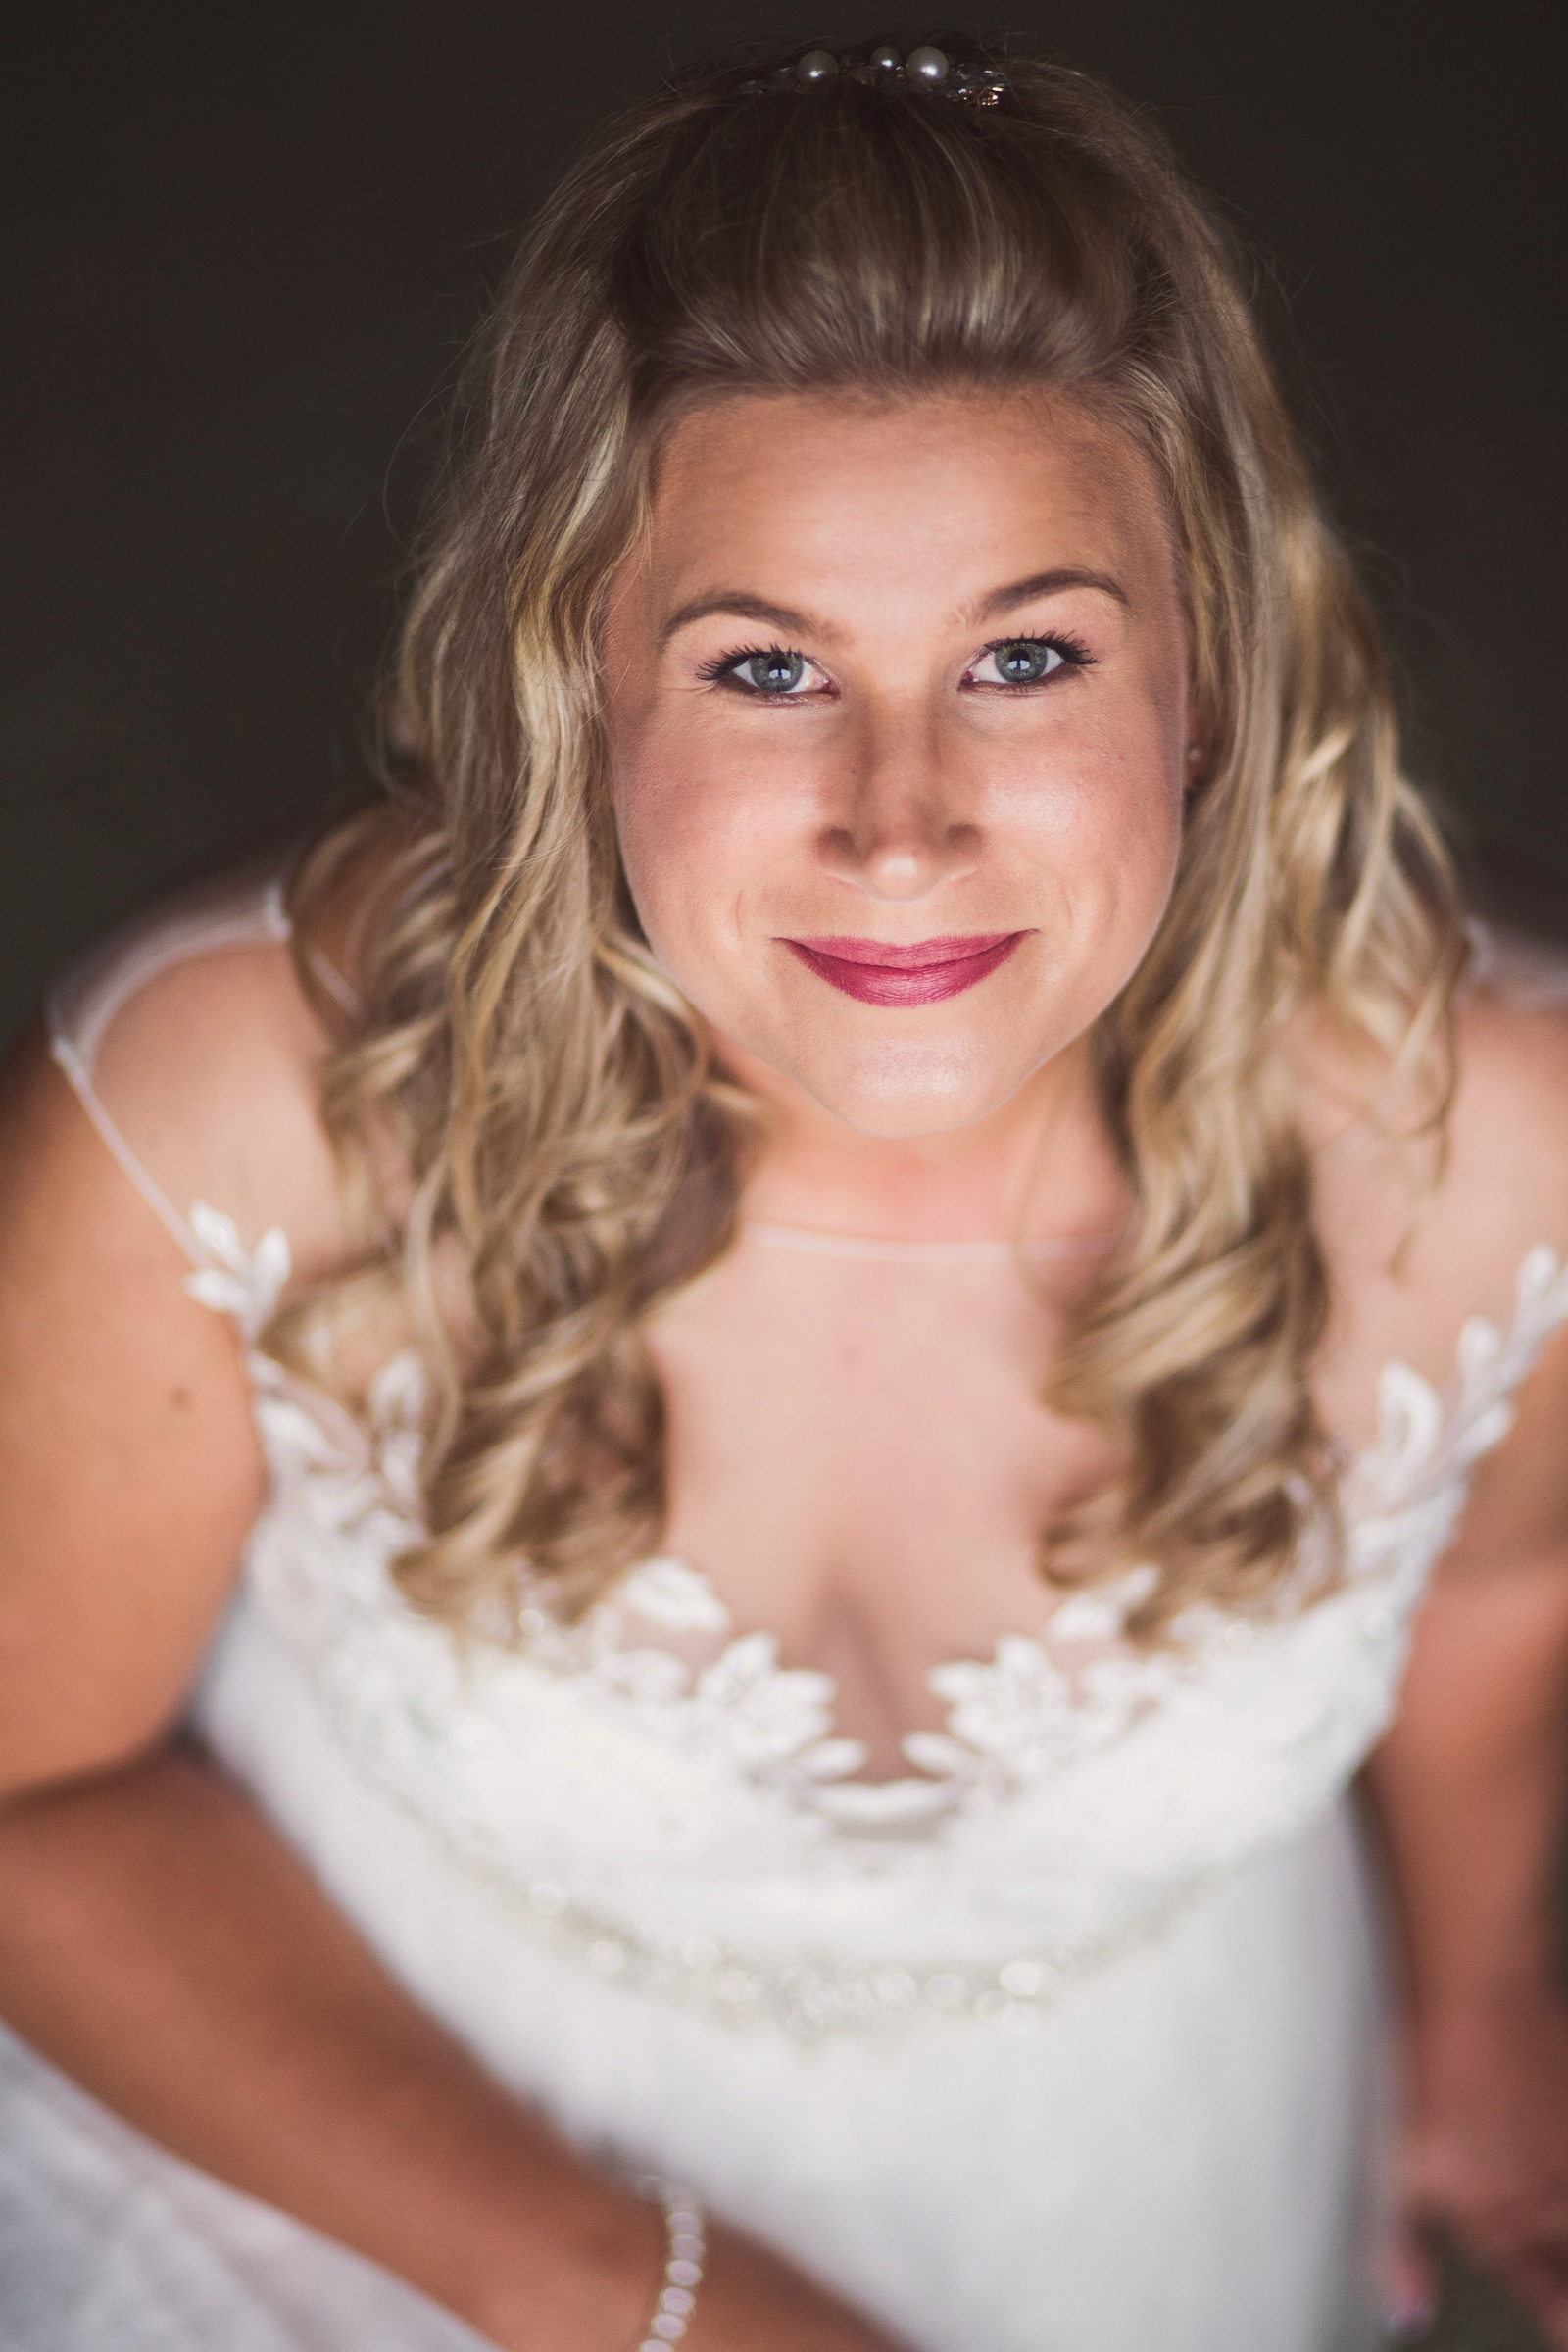 bridal-portrait-seattle-wedding-photography-vannessa-kralovic.jpg